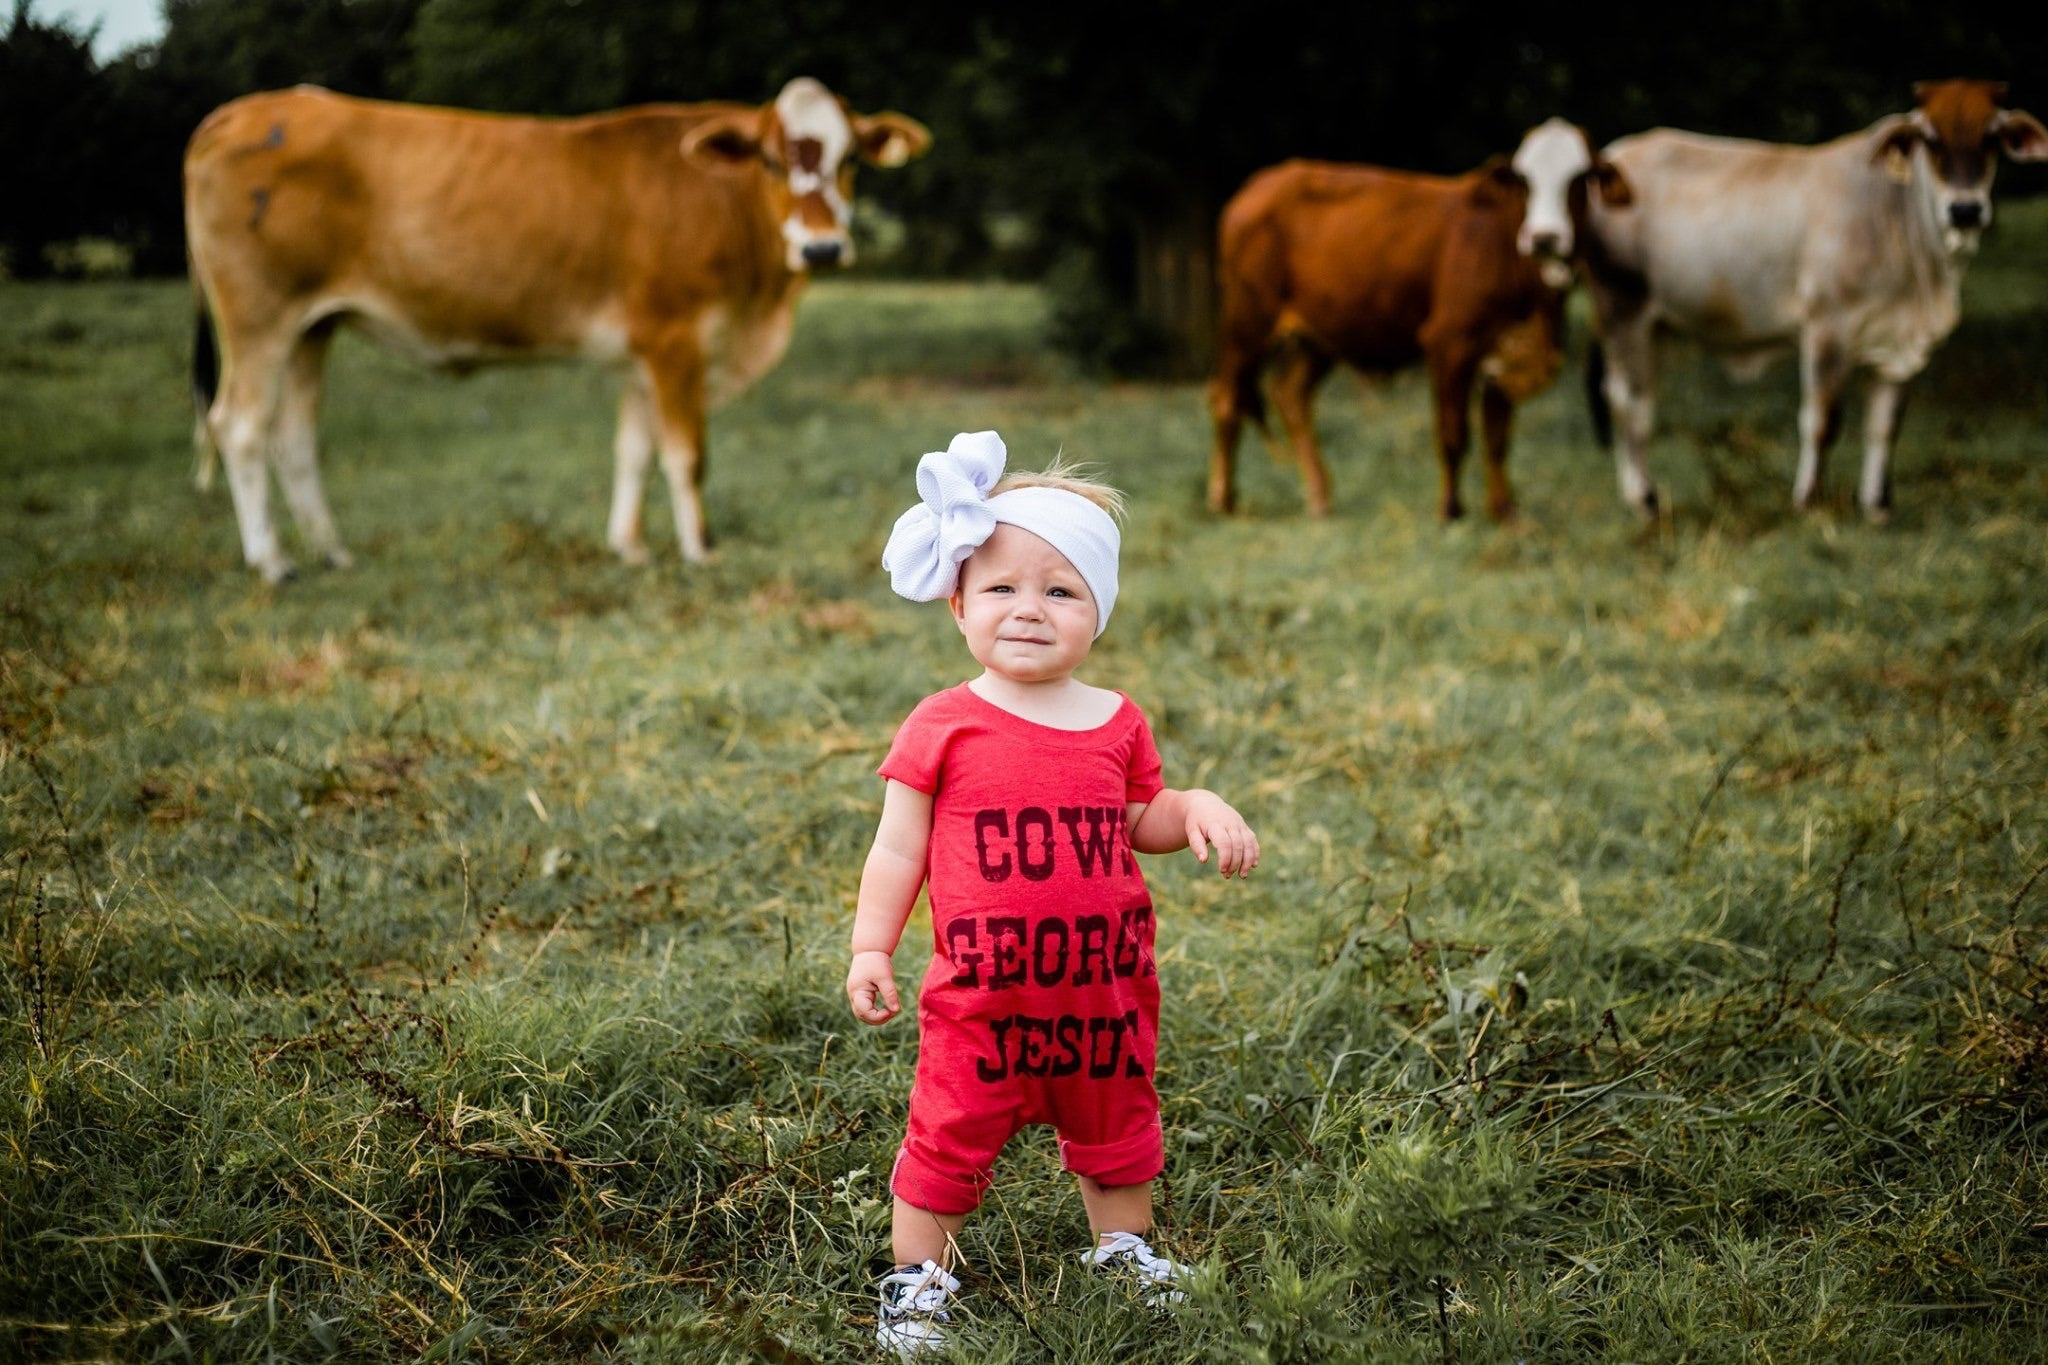 Cows, George & Jesus - Little Southern Swag